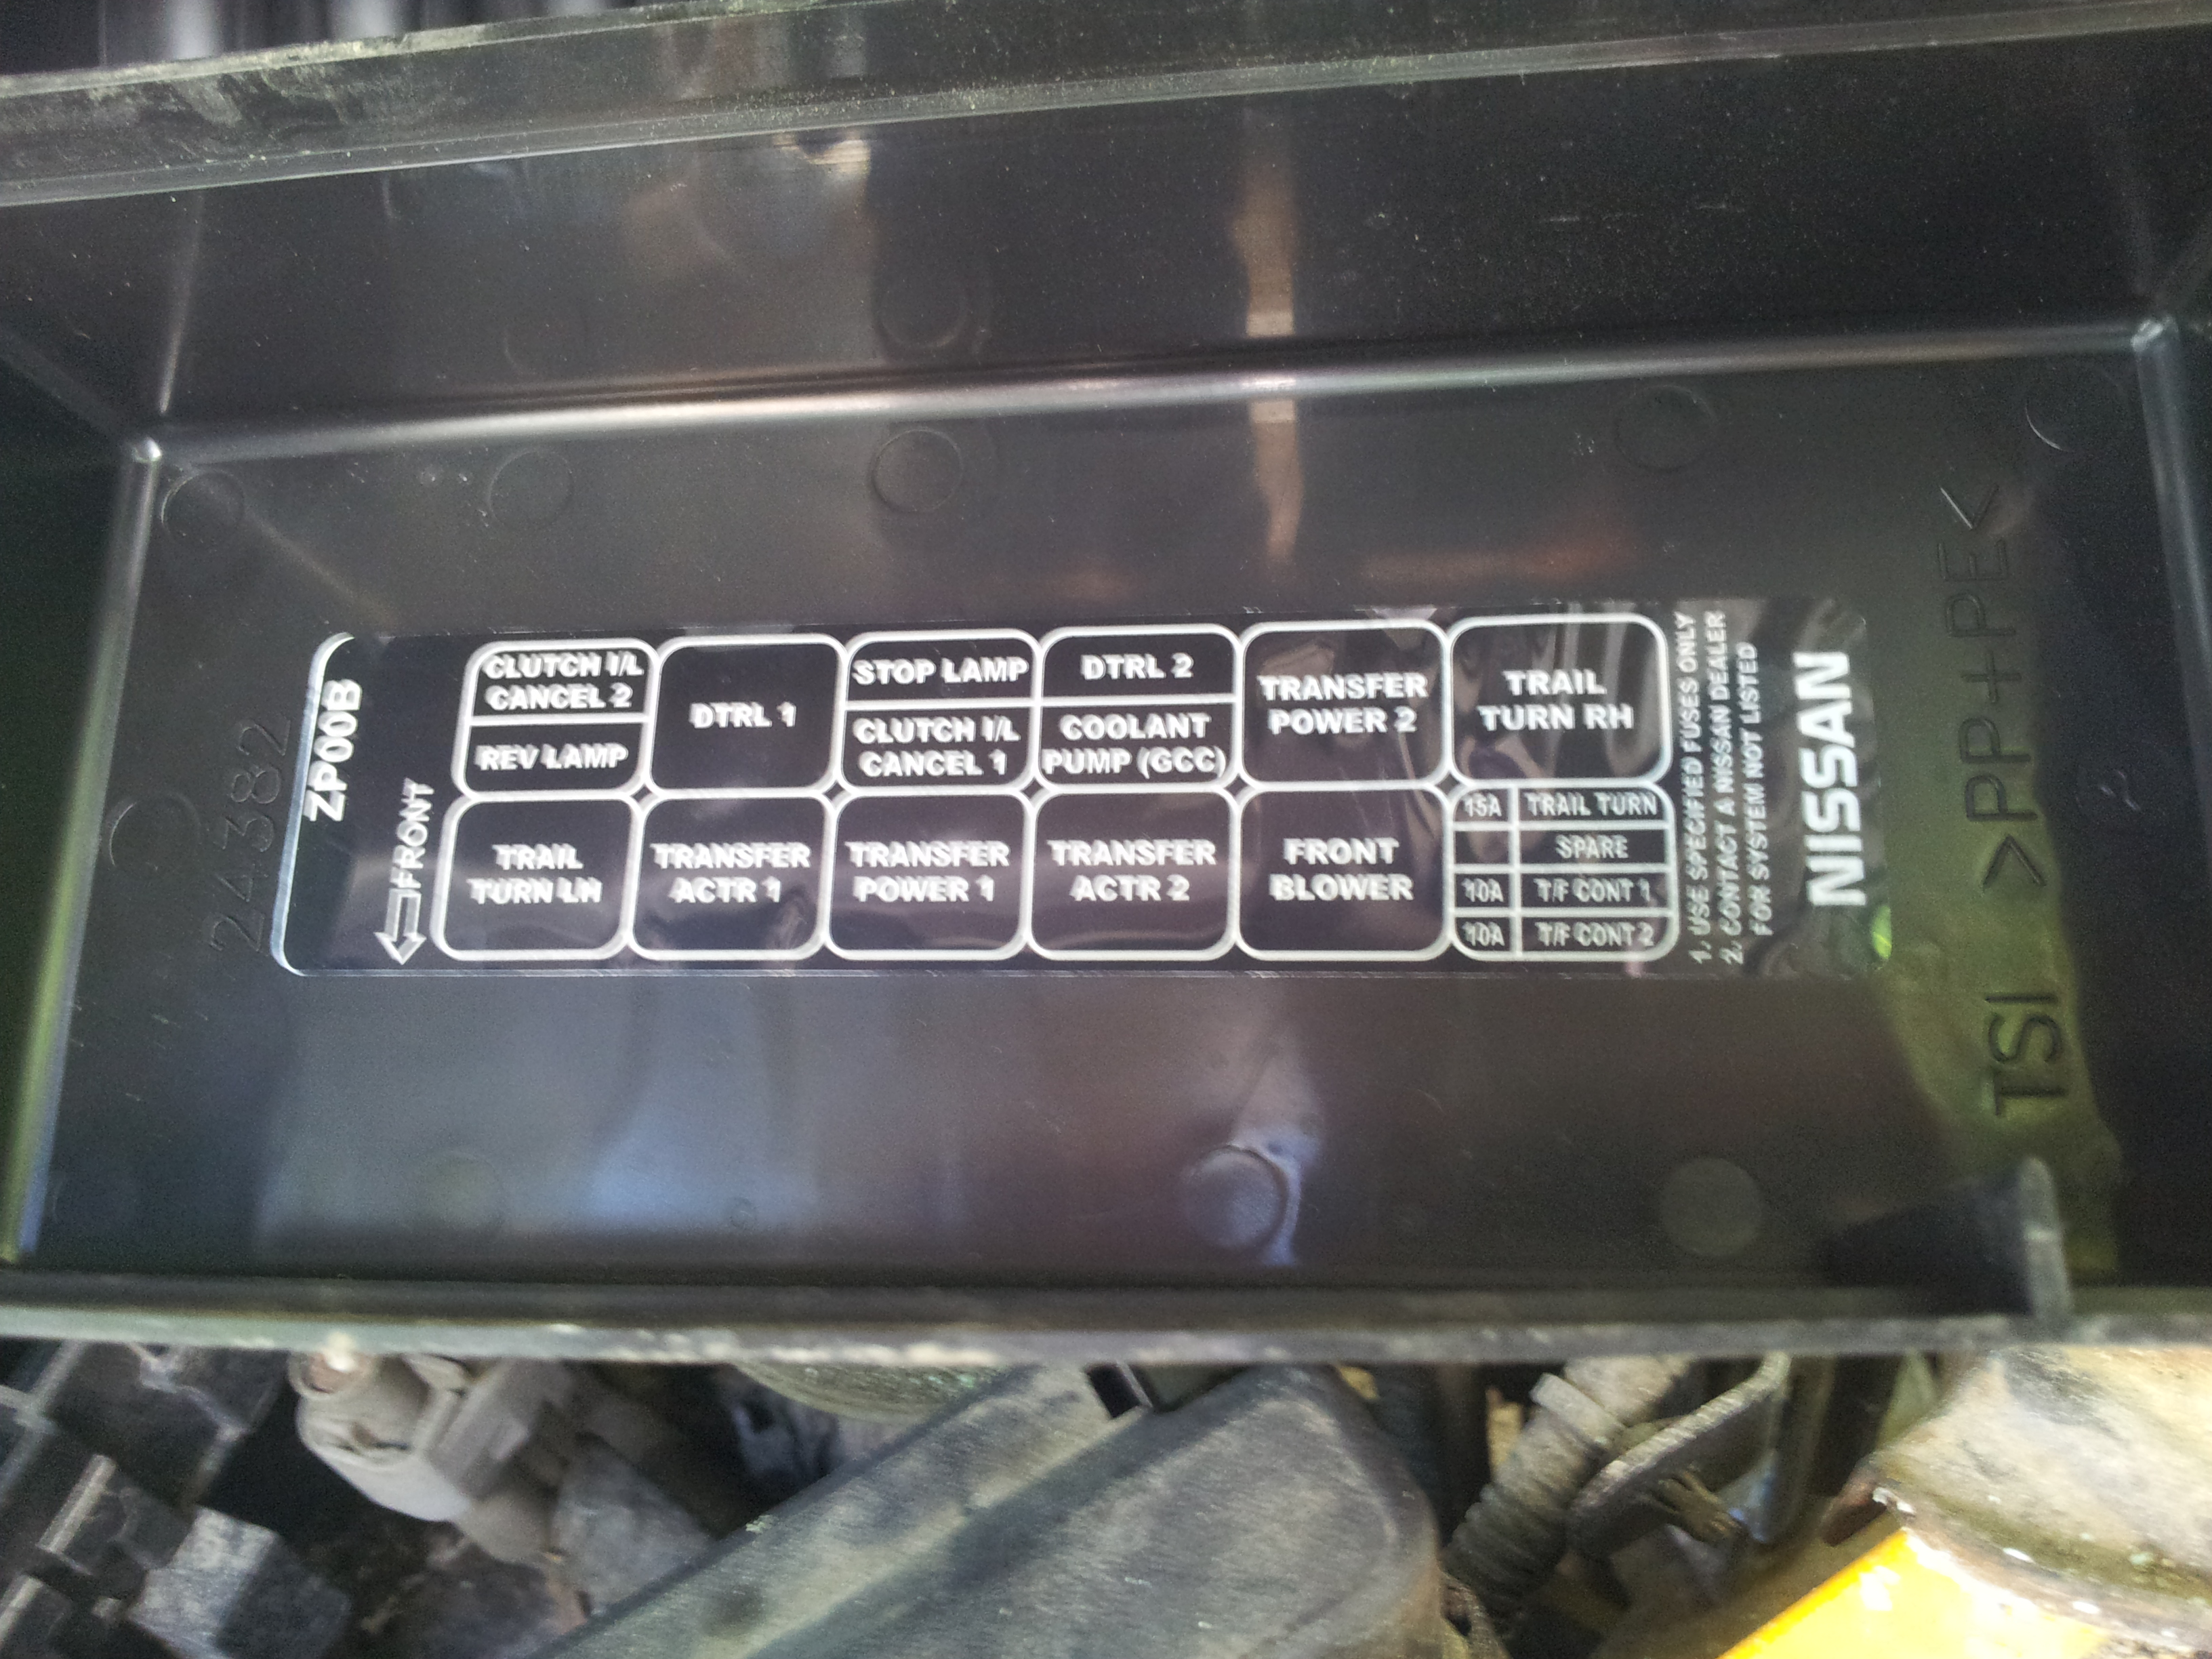 Nissan Frontier Clutch Diagram Free Wiring For You 2007 Fuse Where Is The Interlock Relay In My